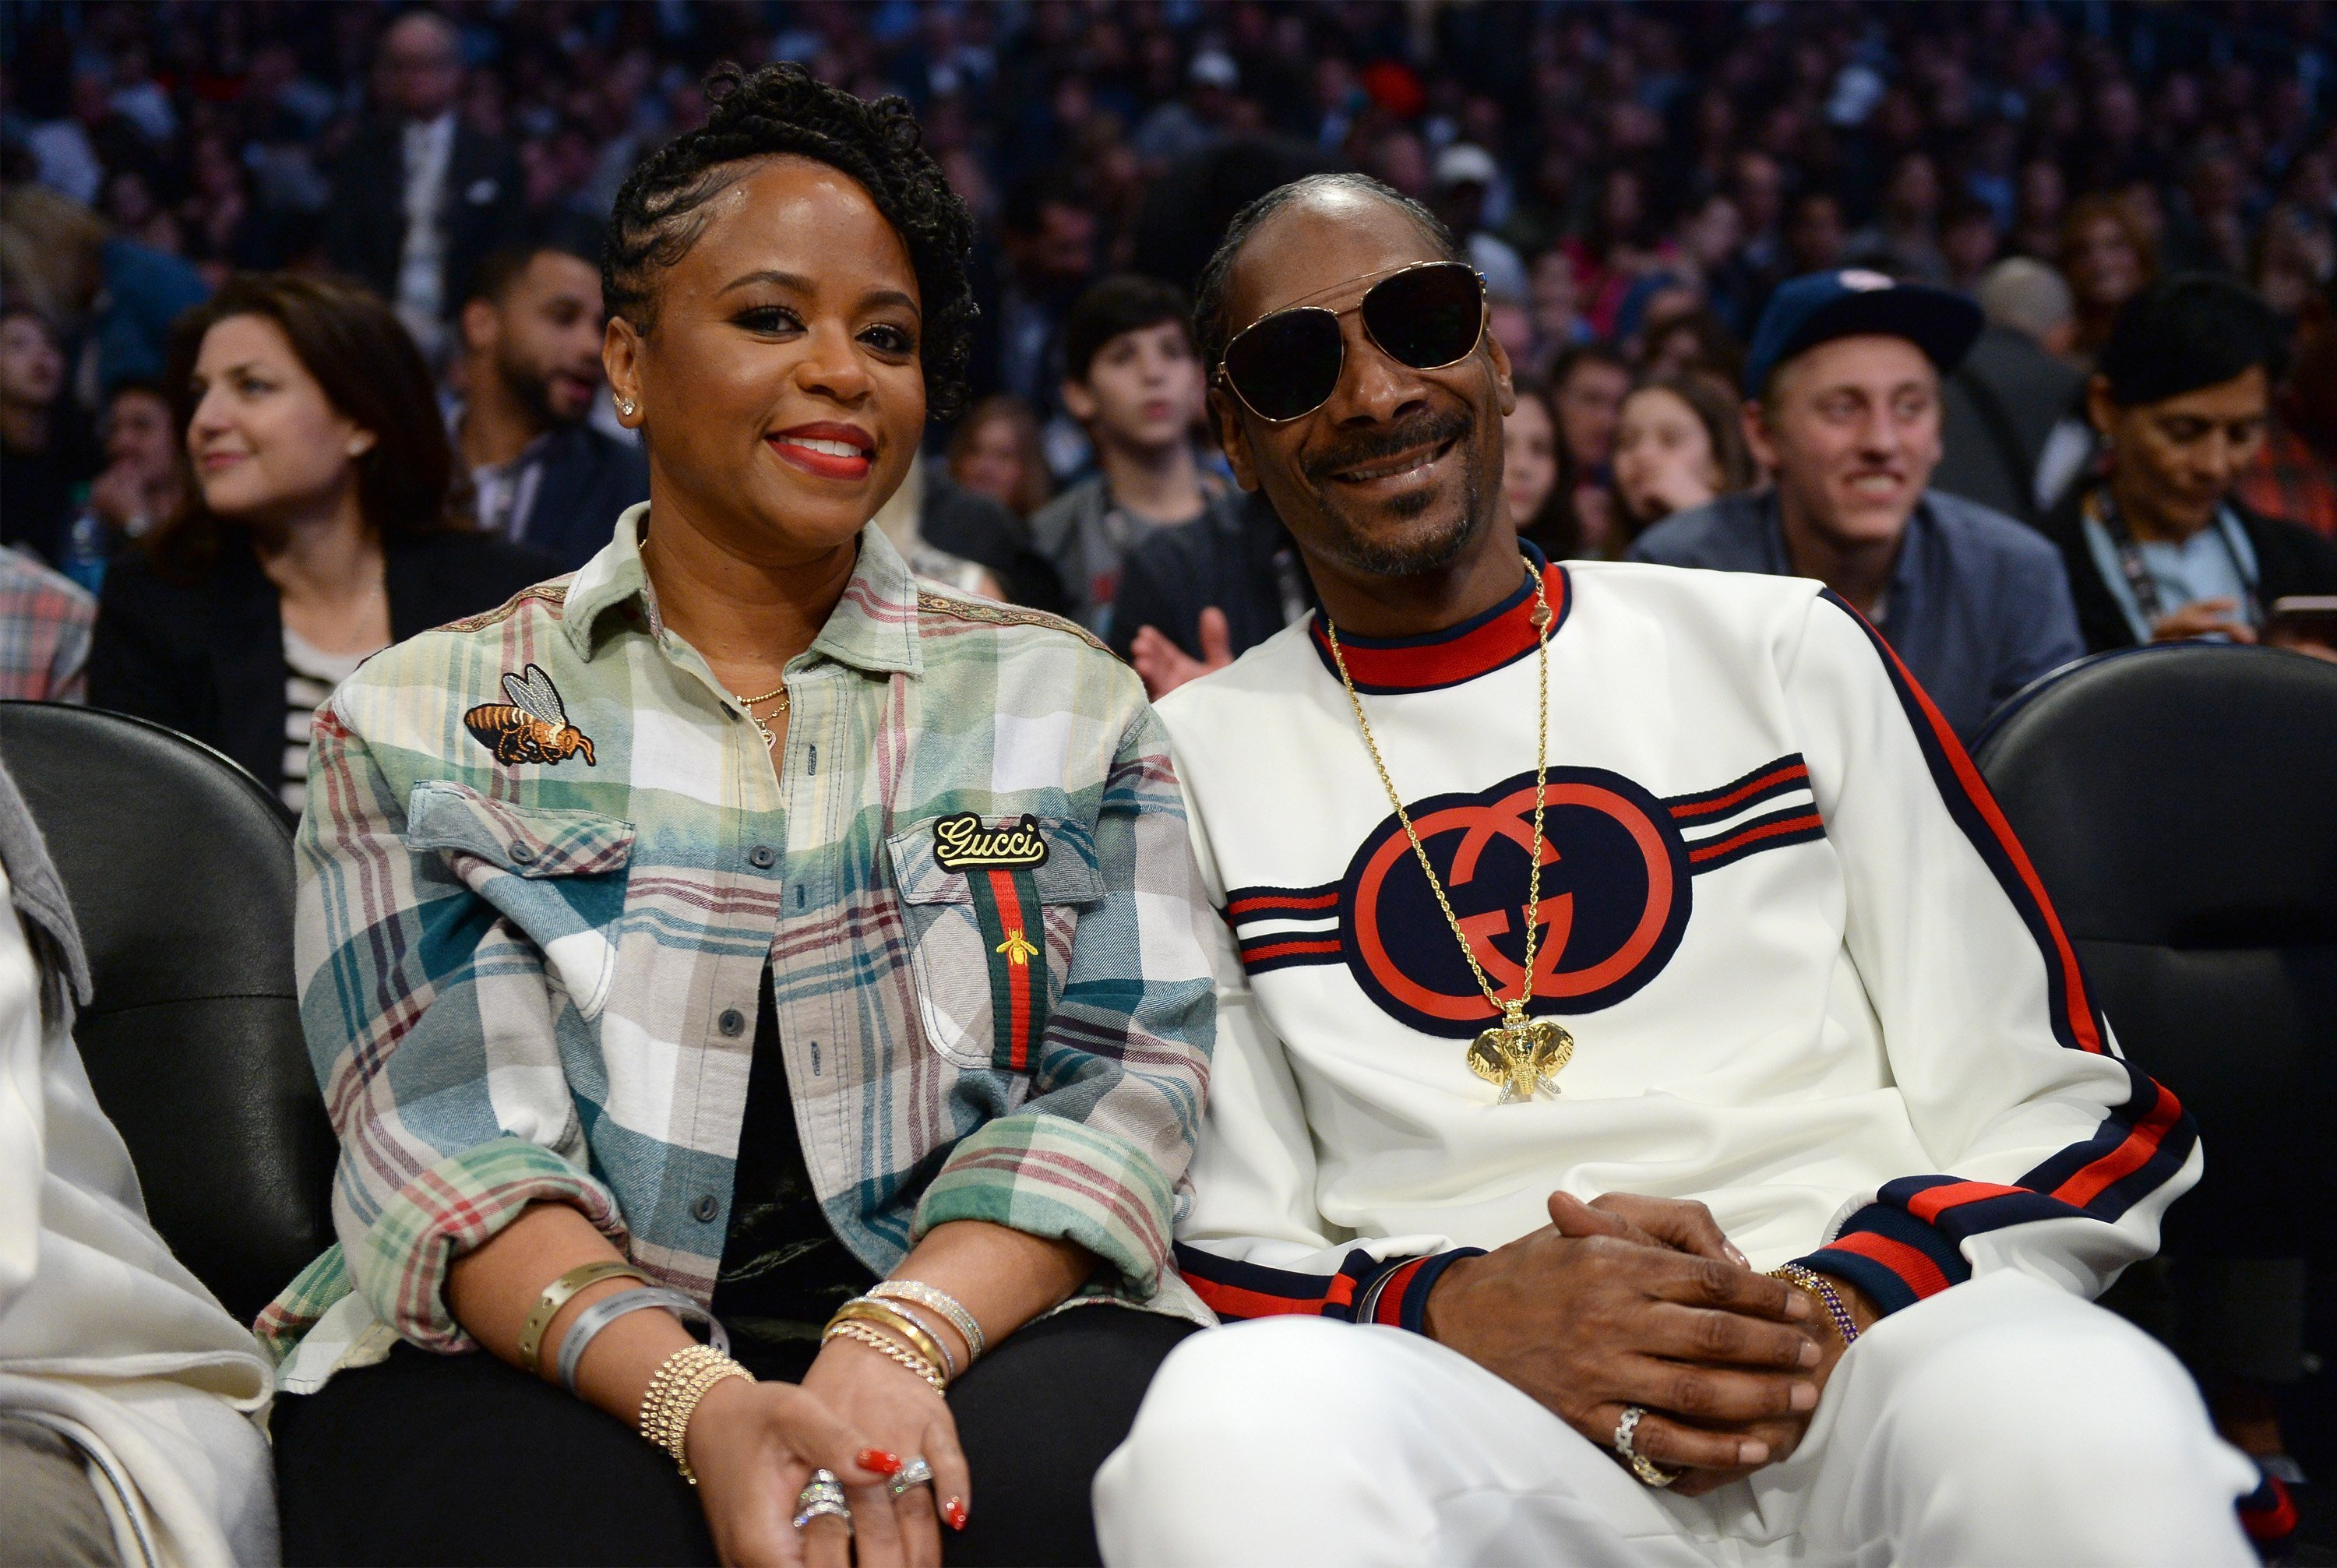 Snoop Dogg and wife Shante attend the NBA All-Star Game 2018 at Staples Center on February 18, 2018 | Photo: GettyImages